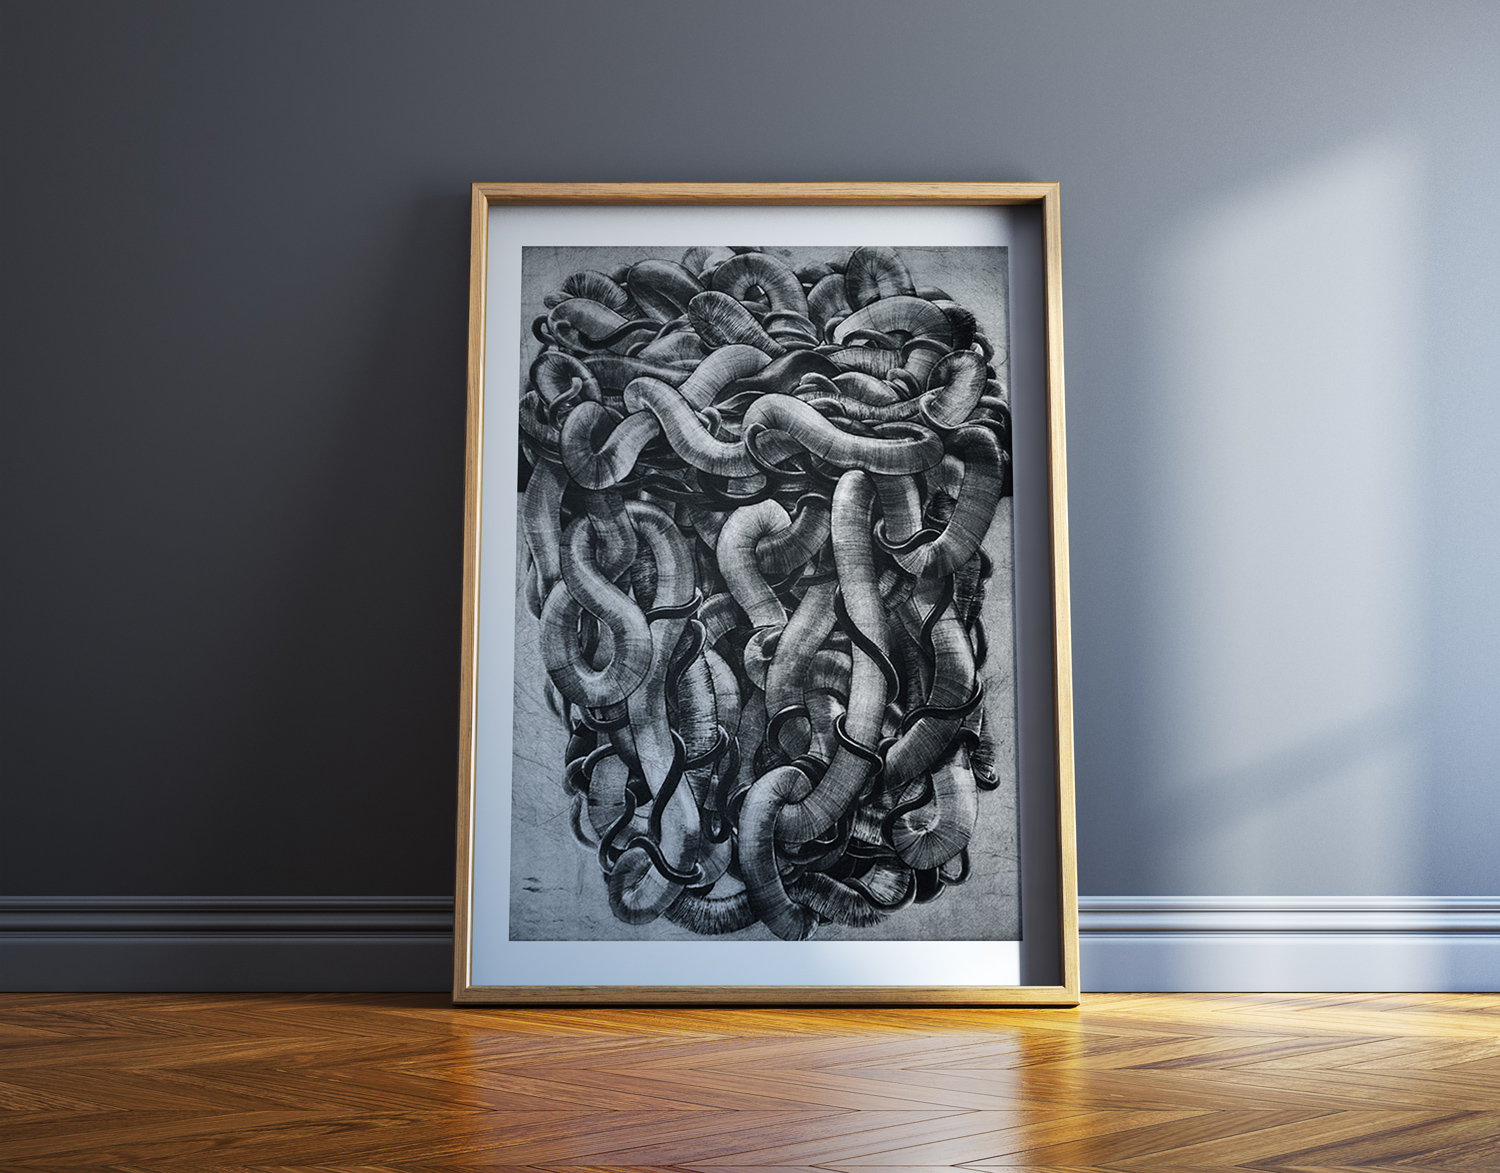 art-prints, engravings, abstract, aesthetic, monochrome, movement, black, grey, white, ink, paper, abstract-forms, autumn, danish, decorative, design, interior, interior-design, nordic, scandinavien, Buy original high quality art. Paintings, drawings, limited edition prints & posters by talented artists.